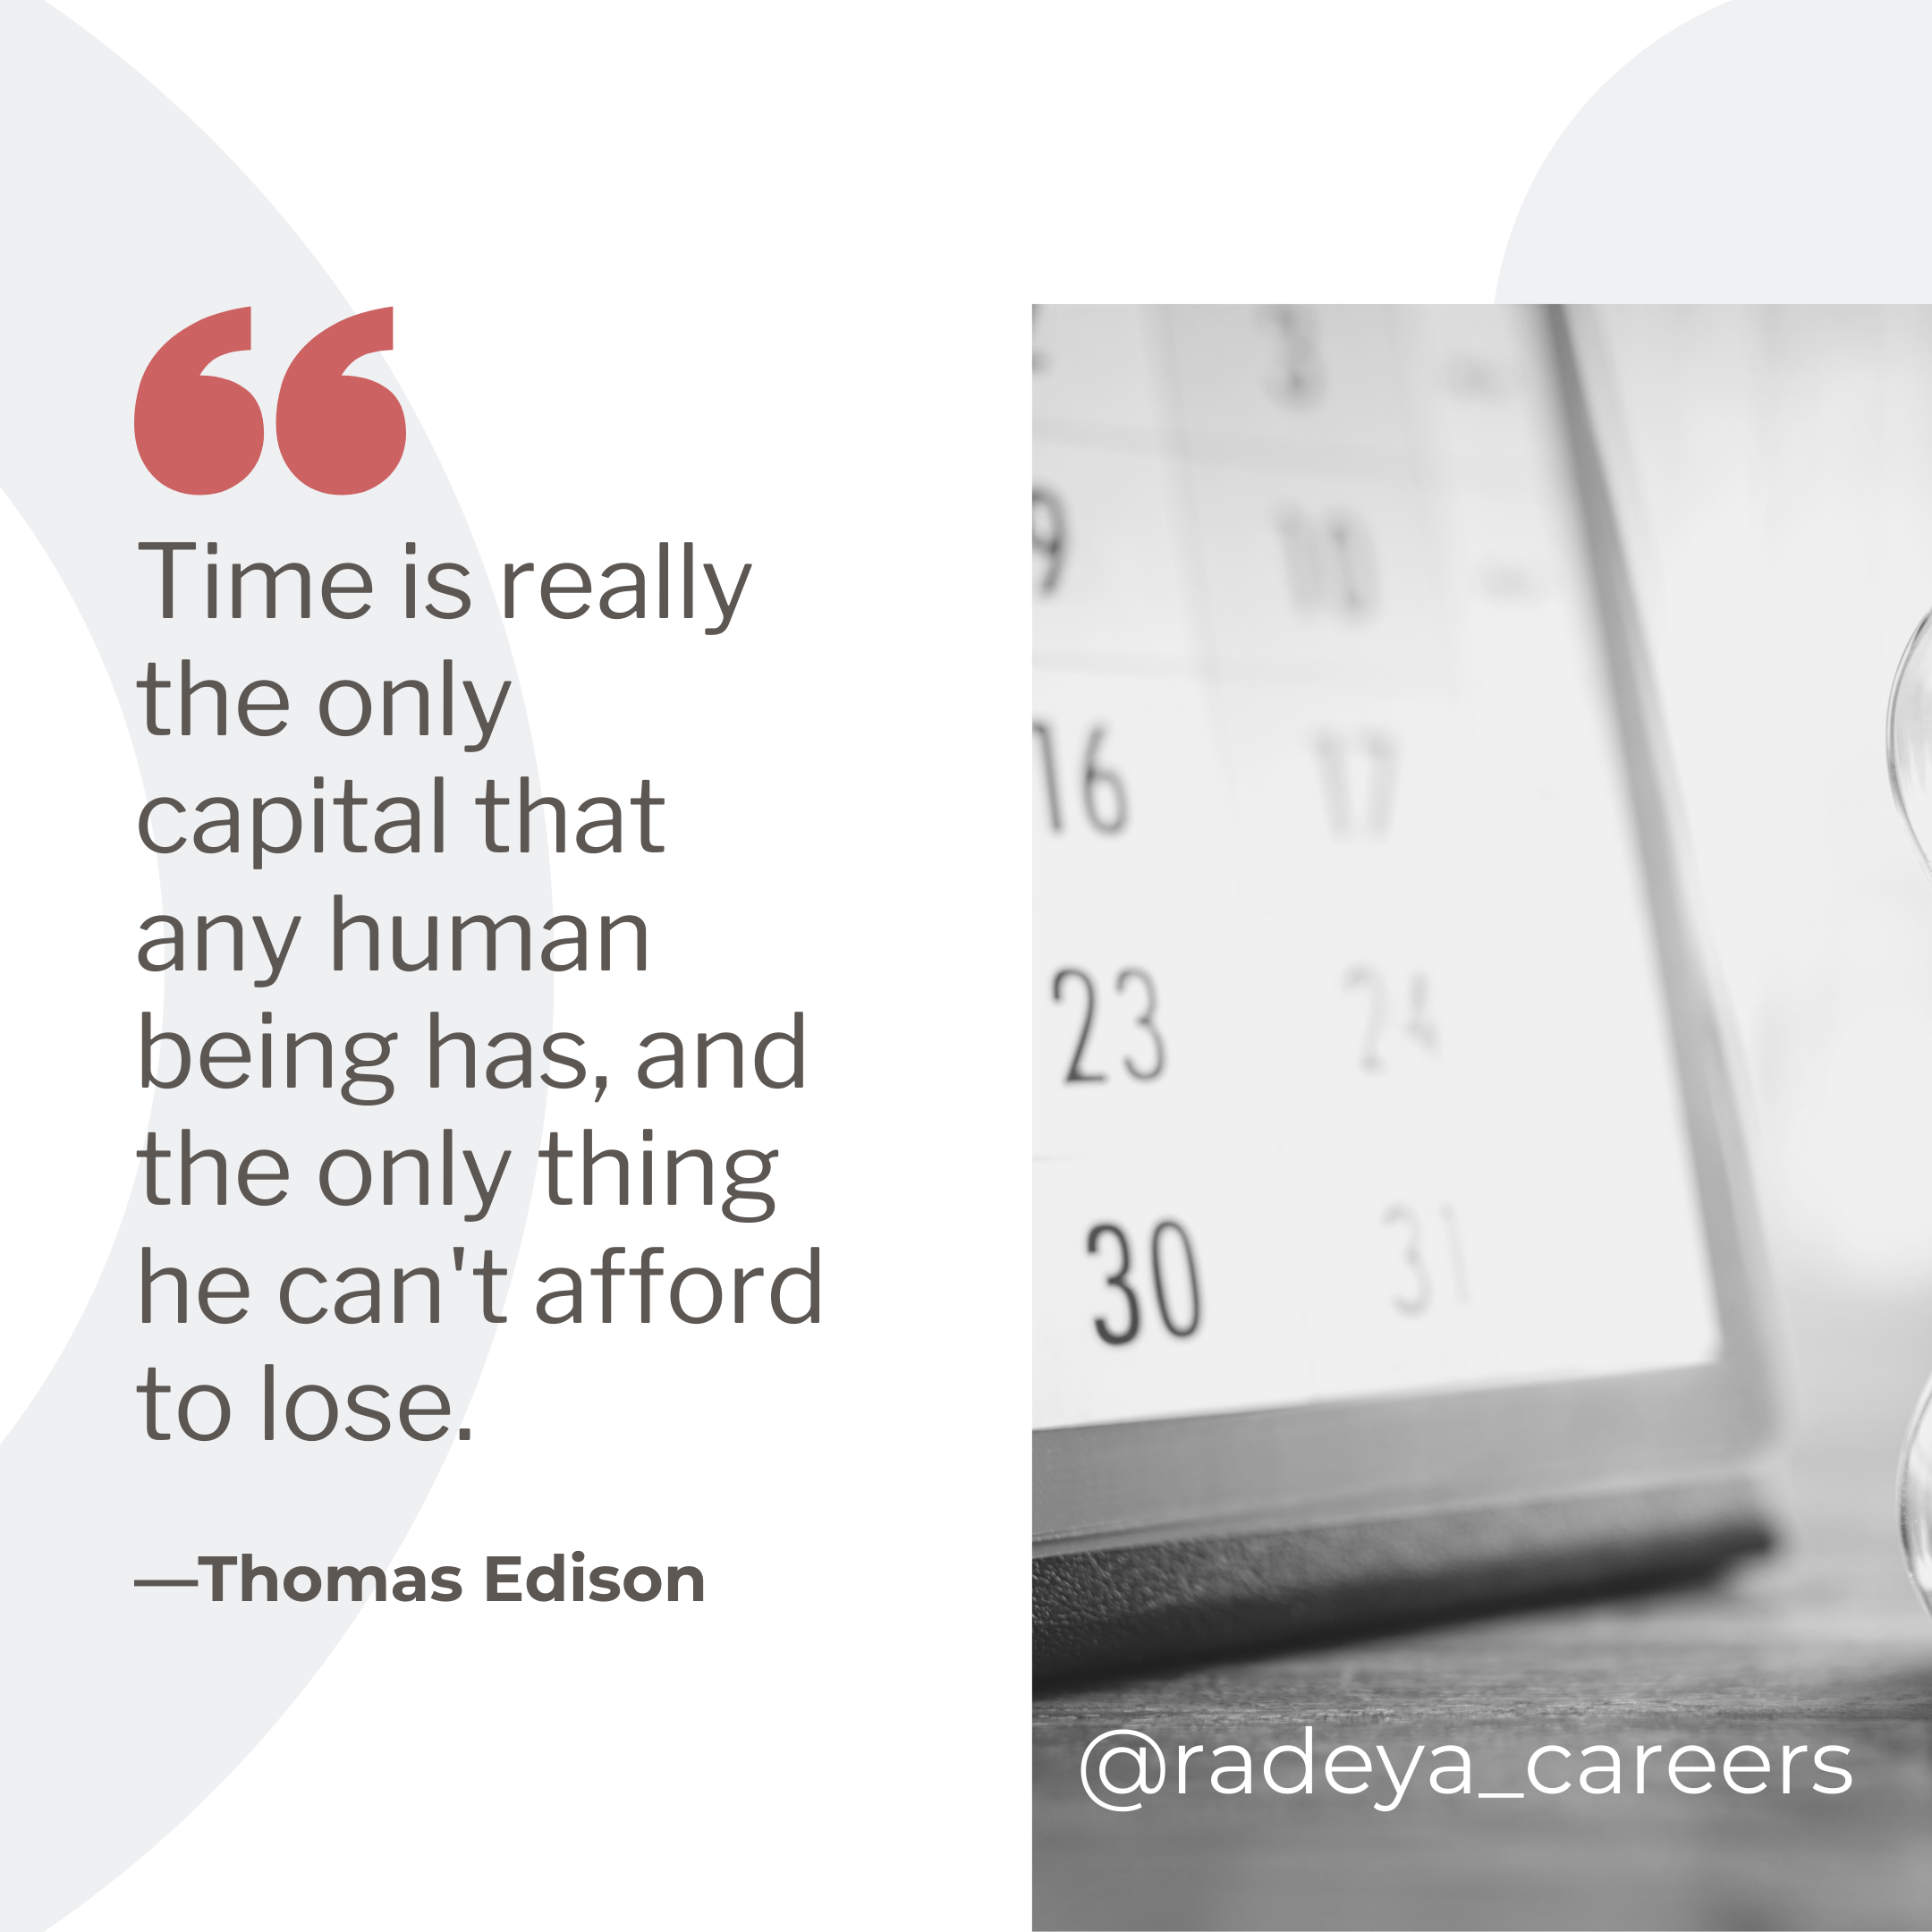 Time is really the only capital that any human has and the only thing he can't afford to lose. Quote by Thomas Edison